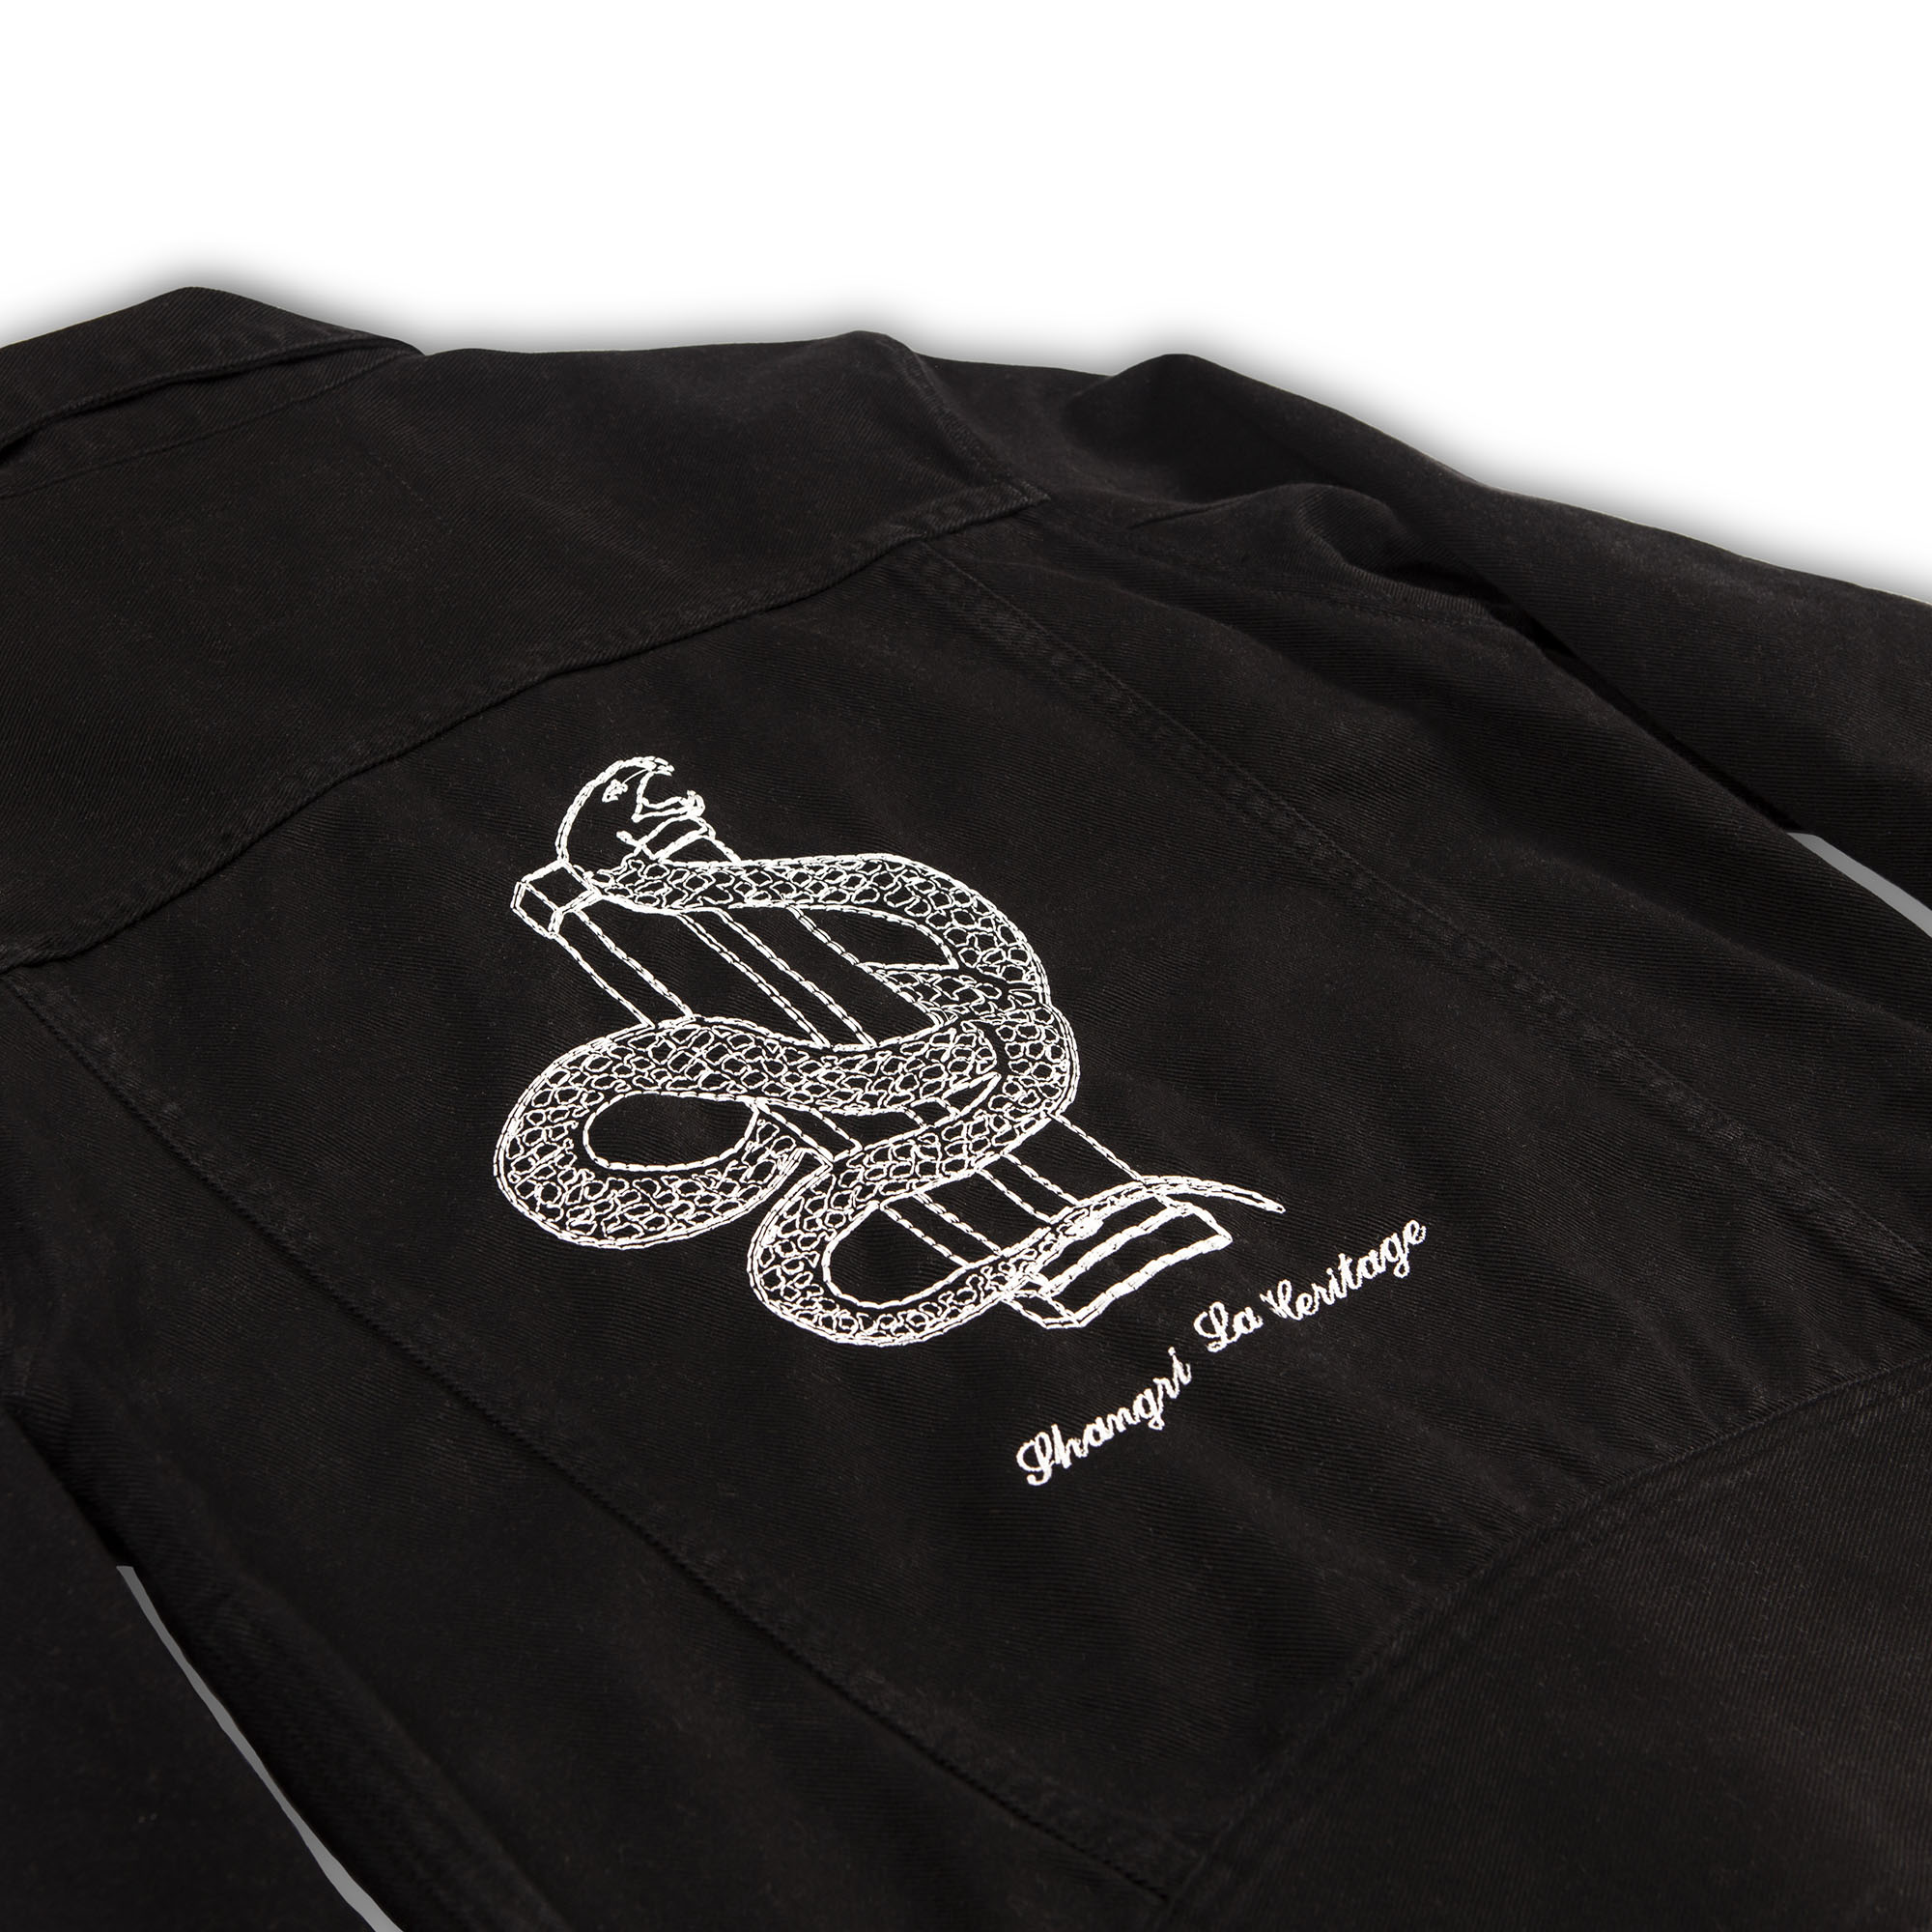 shangri-la-heritage-new-single-rider-sapientia-black-canvas-jacket-still-life-embroidery